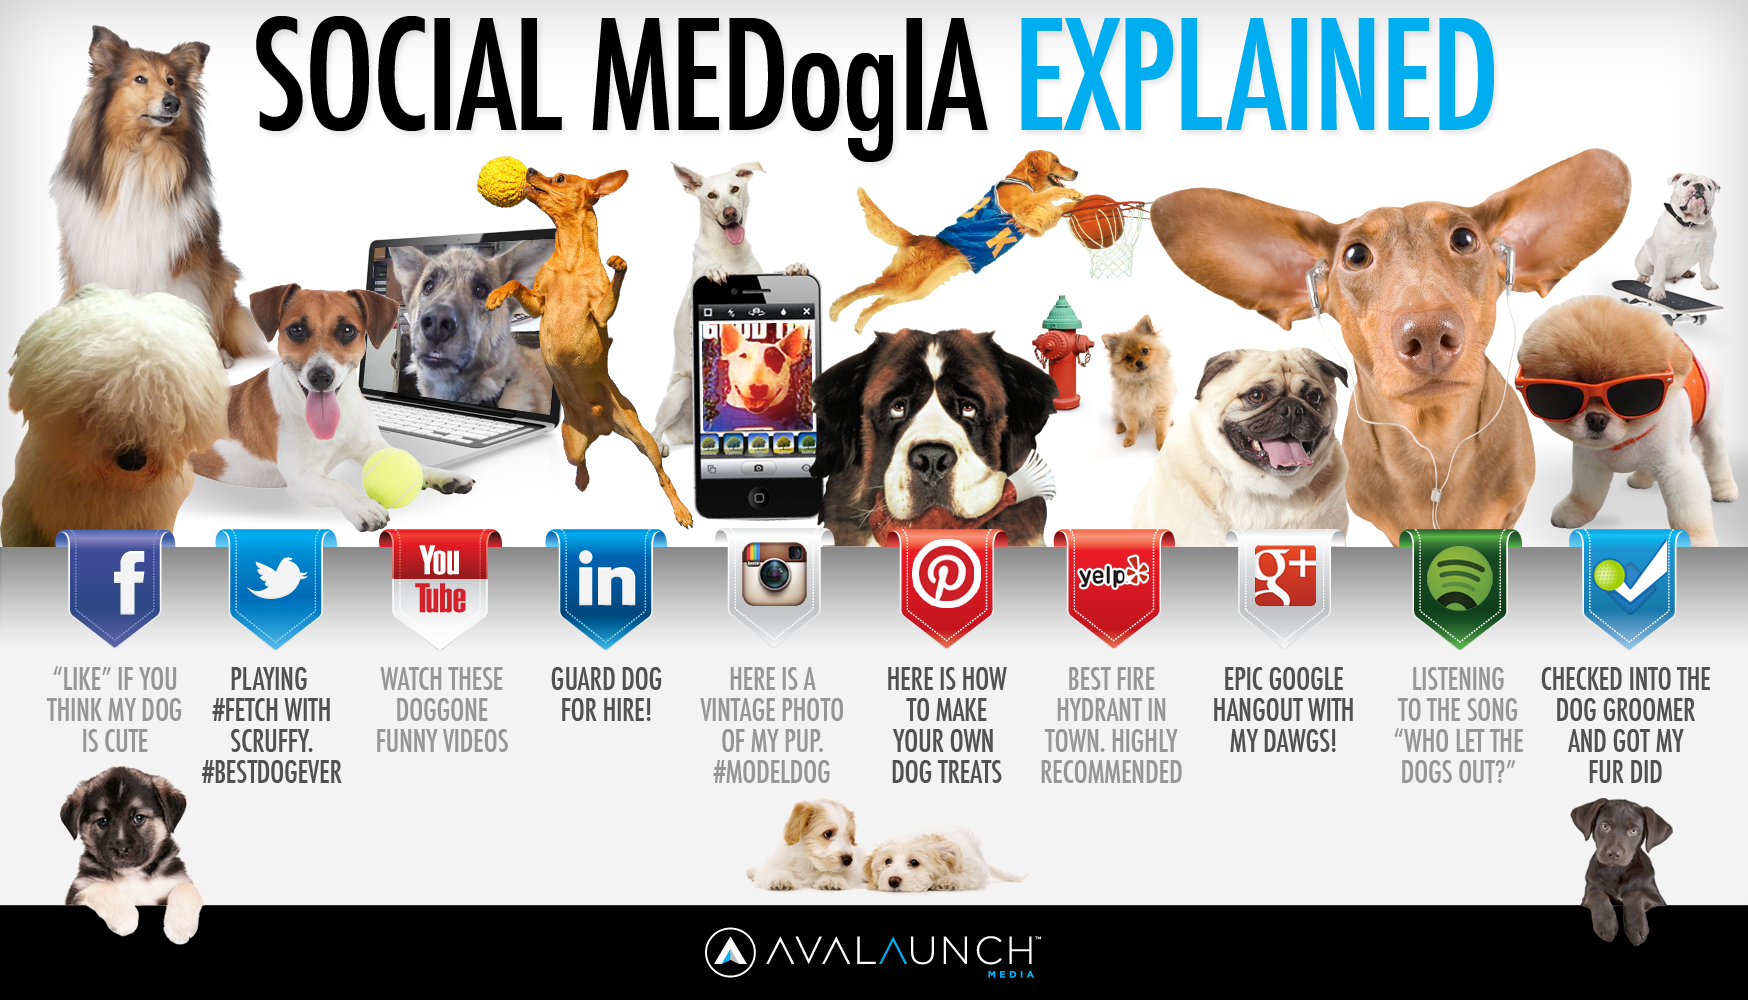 RMG – Social Media Explained